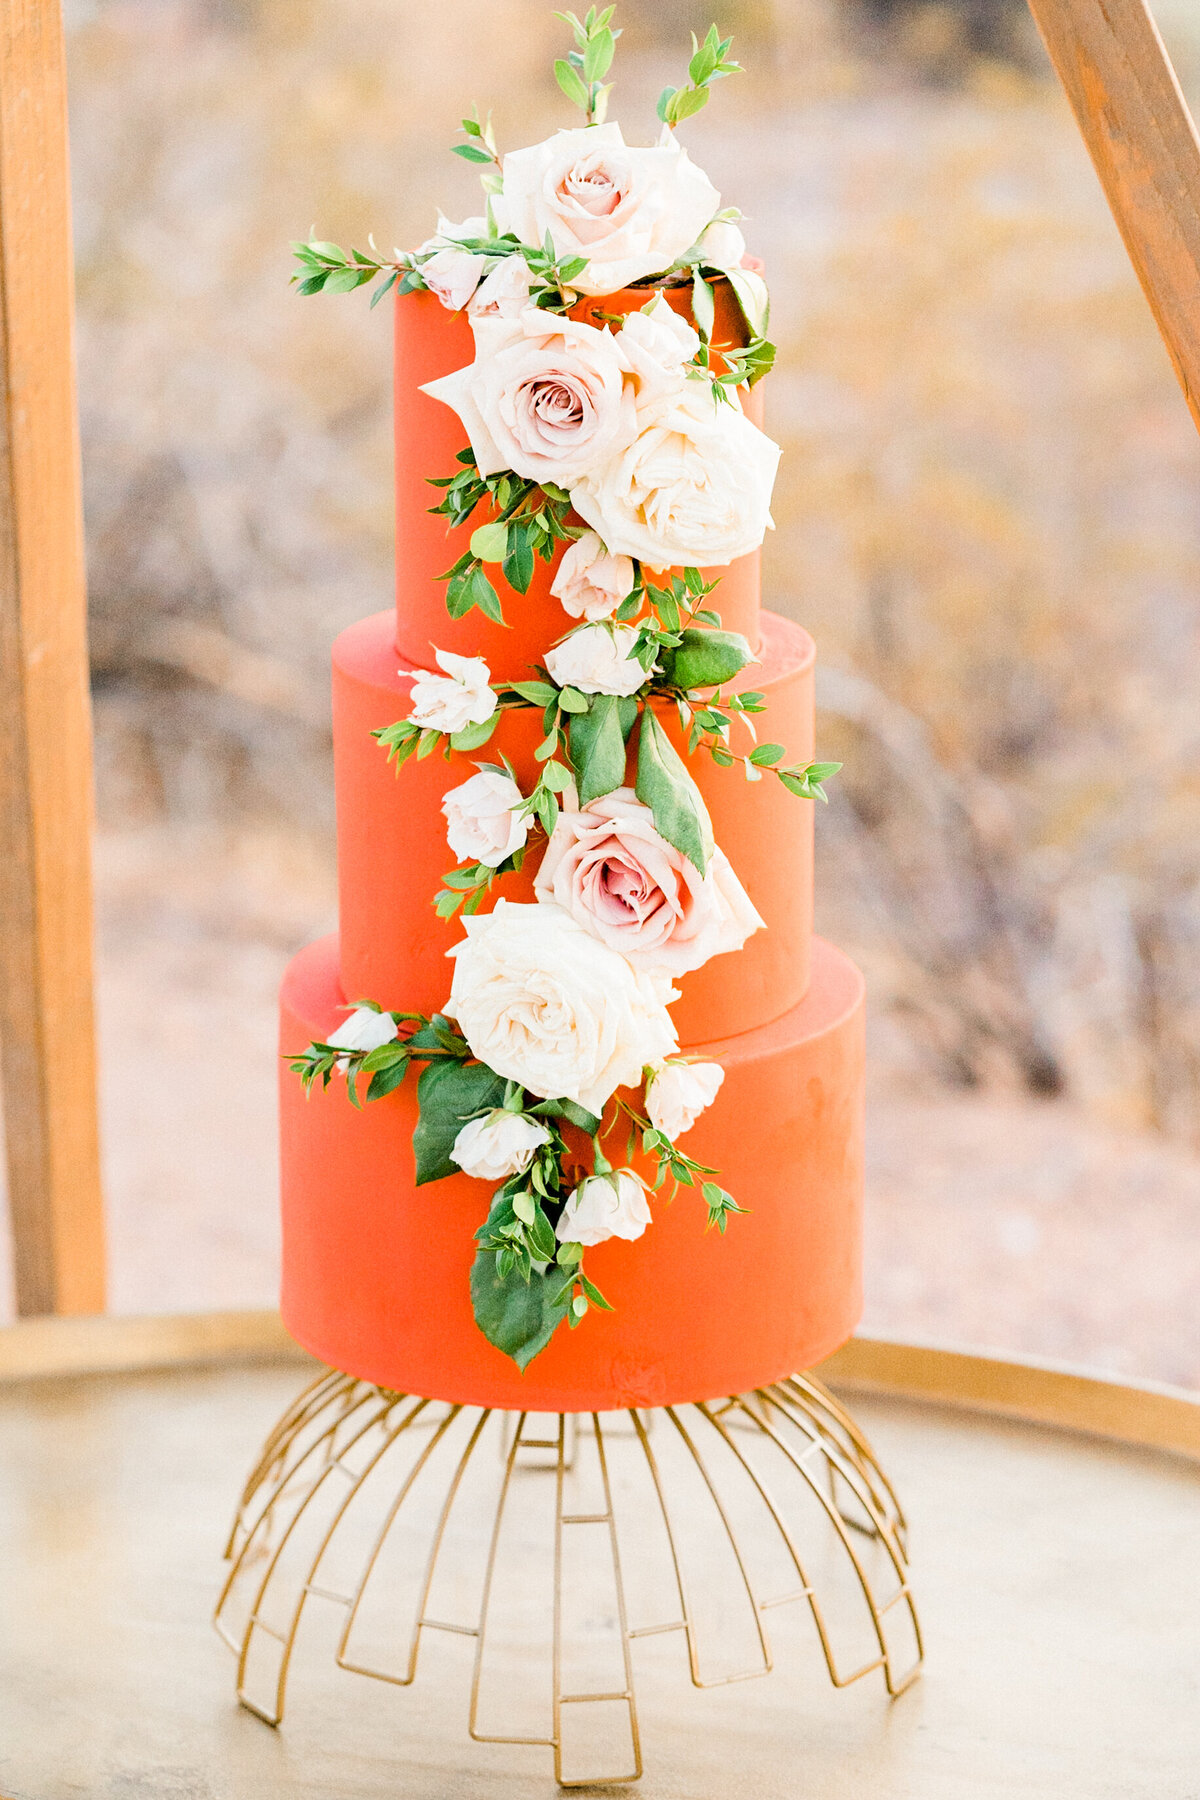 Arizona Wedding Orange Floral Cake - Atlas Rose Photography AZ01